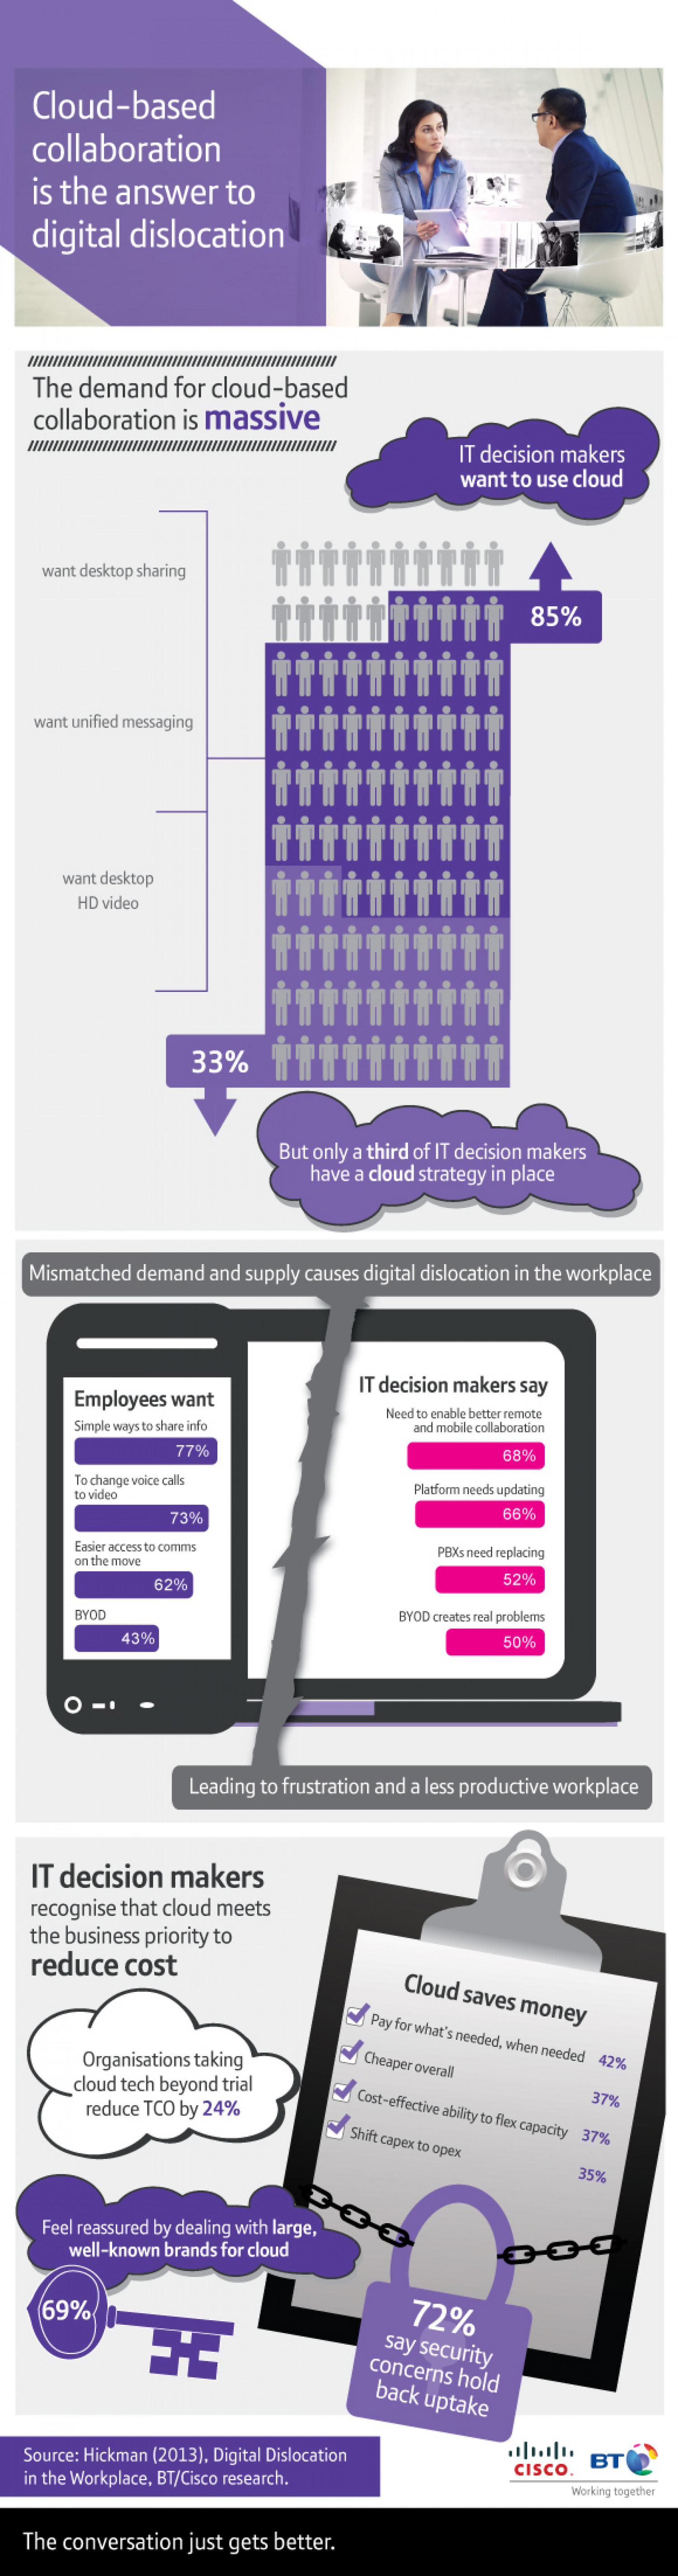 Cloud-based collaboration is the answer to digital dislocation Infographic